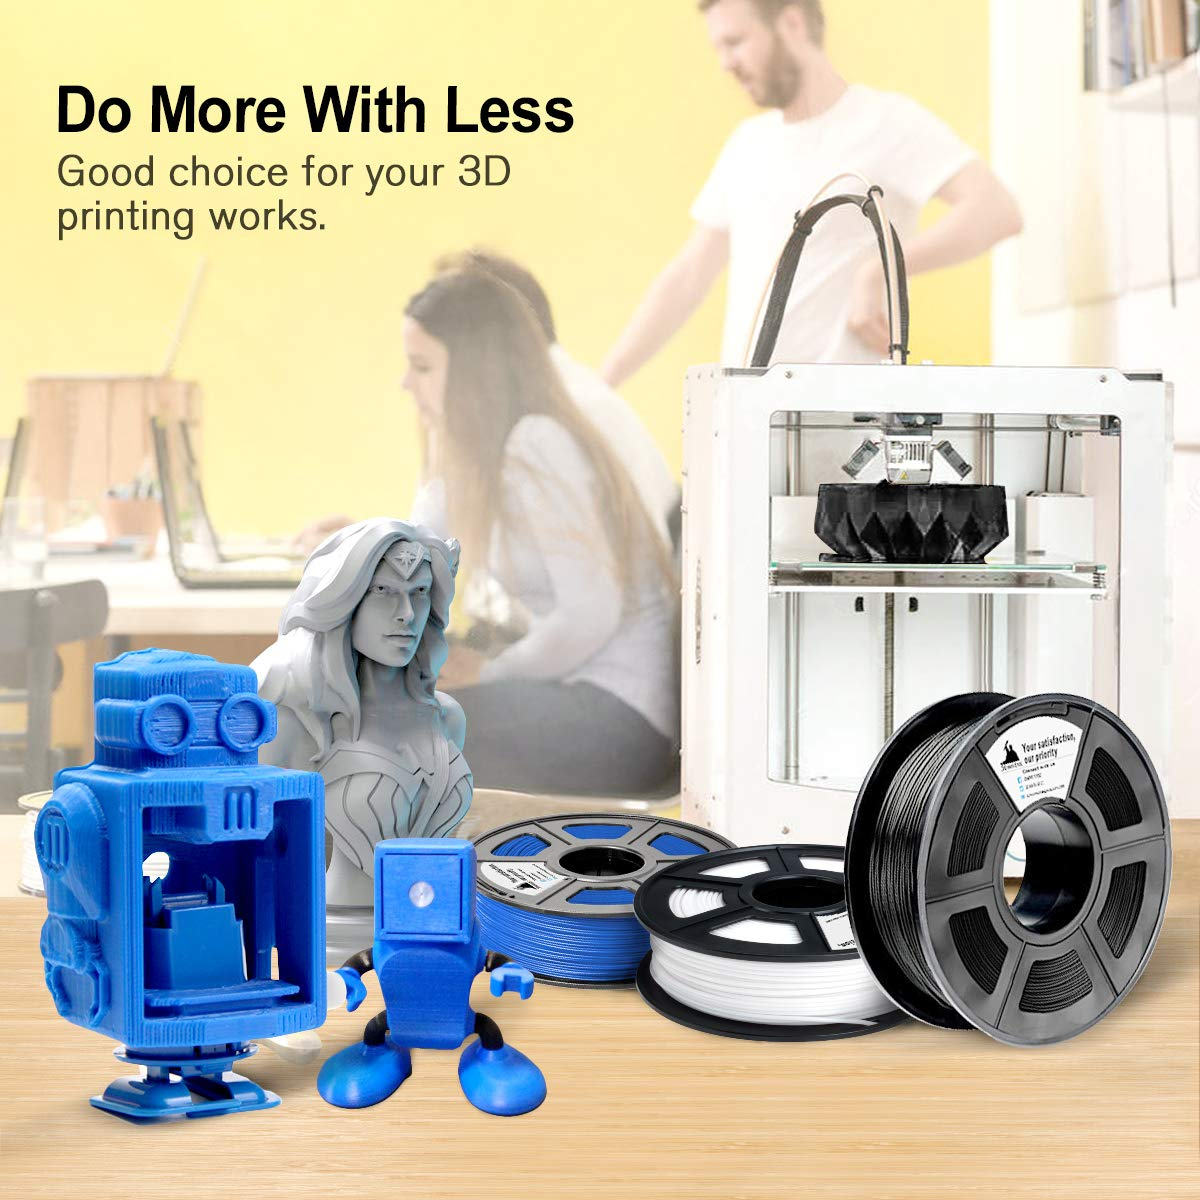 1KG ,1.75mm Filament Bonus with 5M PCL Nozzle Cleaning Filament 2.2 LBS Dimensional Accuracy +//- 0.02 mm 3D Warhorse PLA Filament 1.75mm,PLA 3D Printer Filament PLA Filament Black